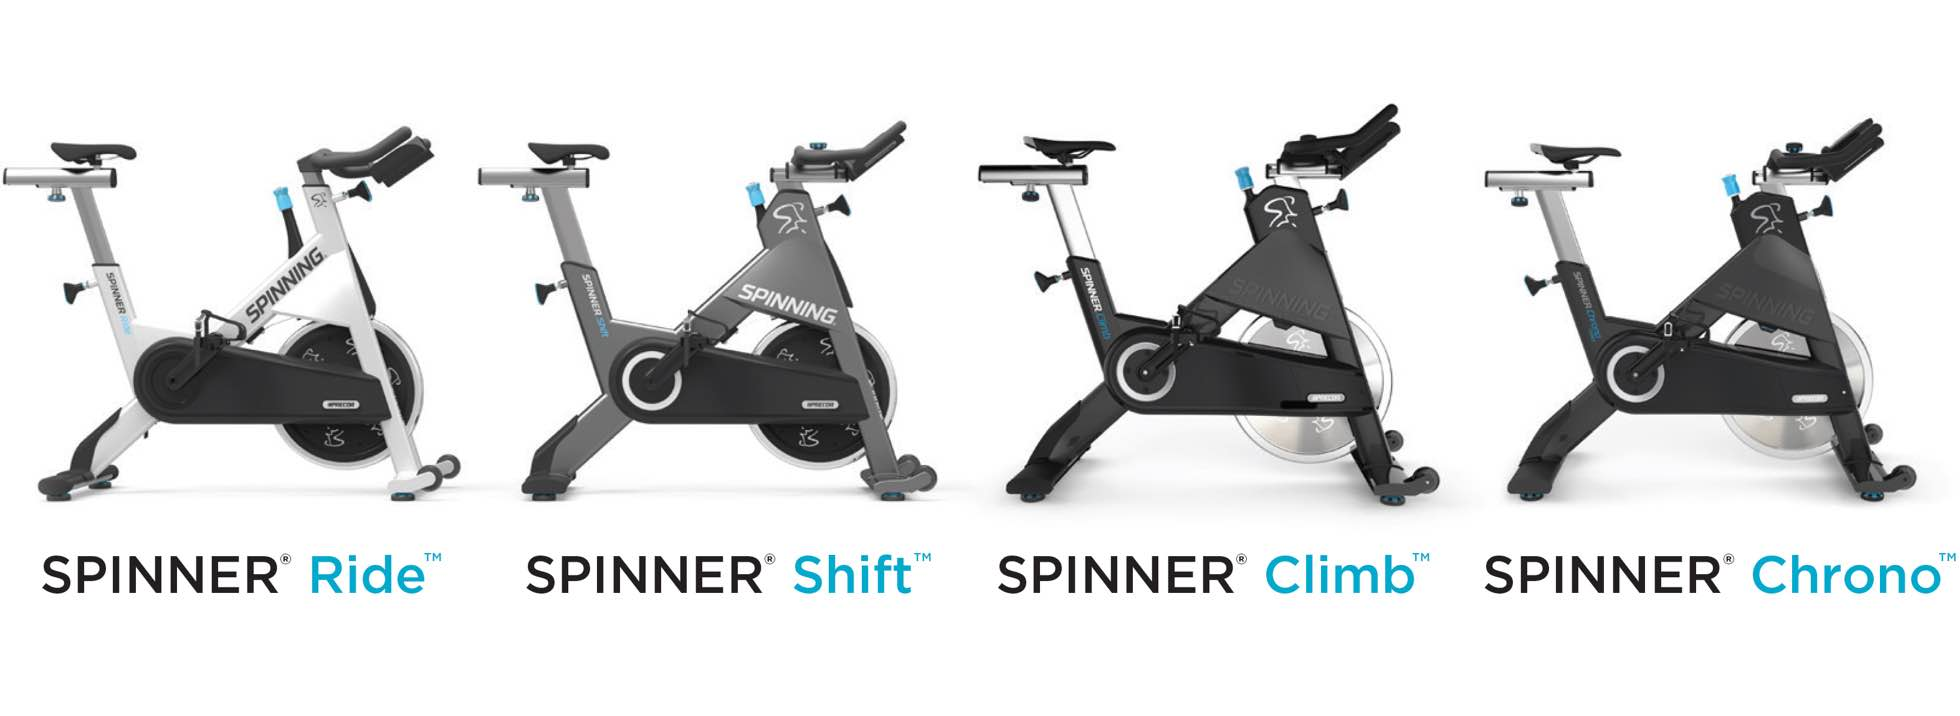 indoor cycle spinner bikes spinning precor us. Black Bedroom Furniture Sets. Home Design Ideas